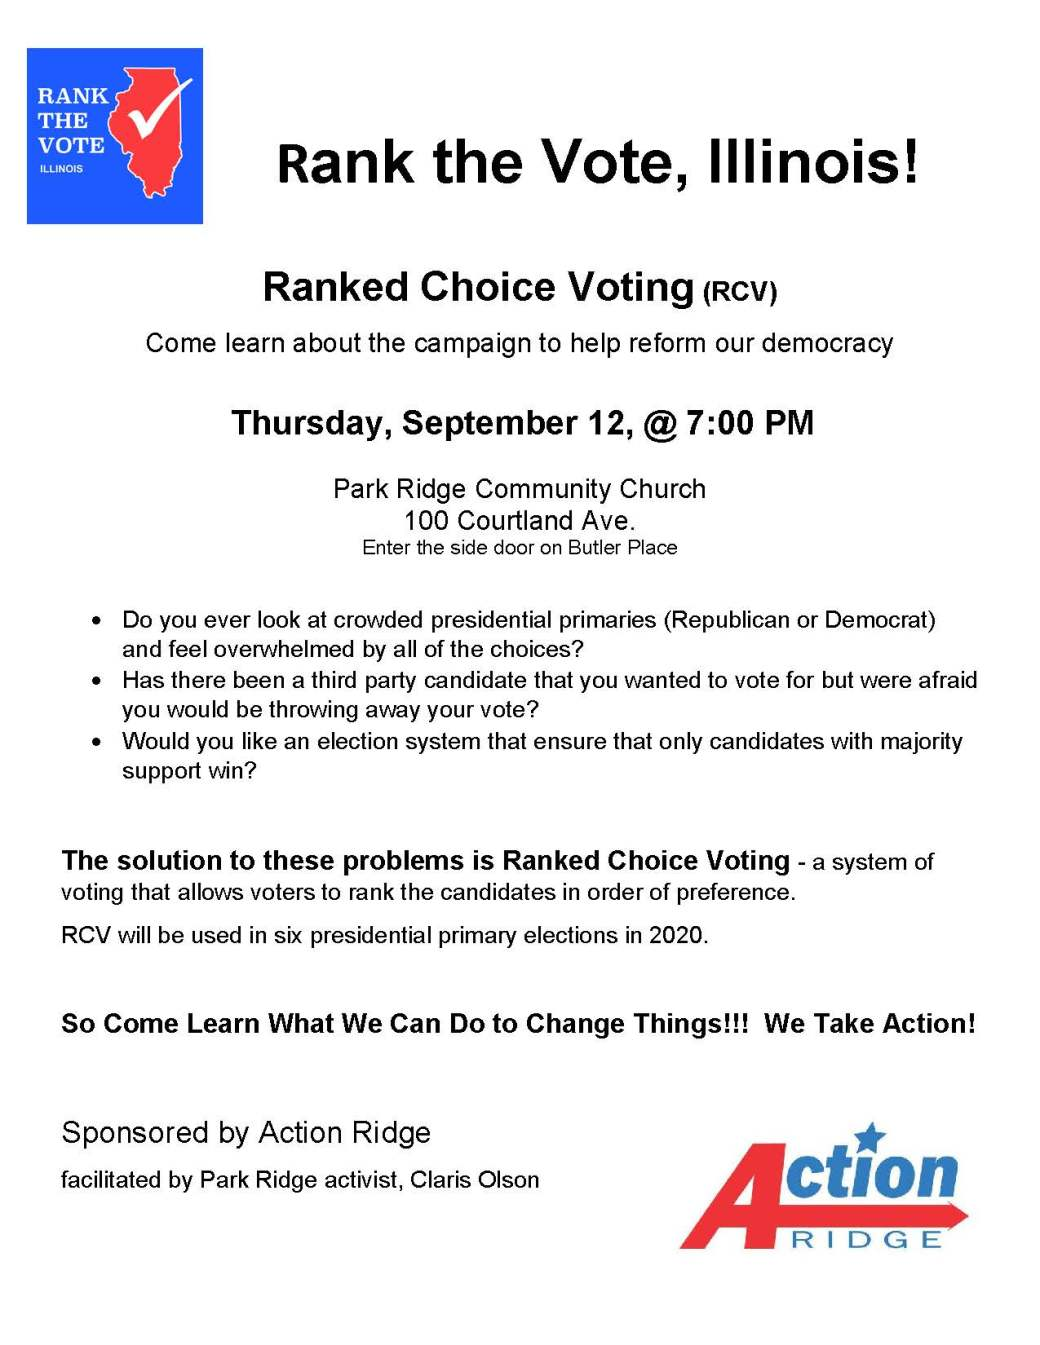 Ranked Choice Voting Flyer